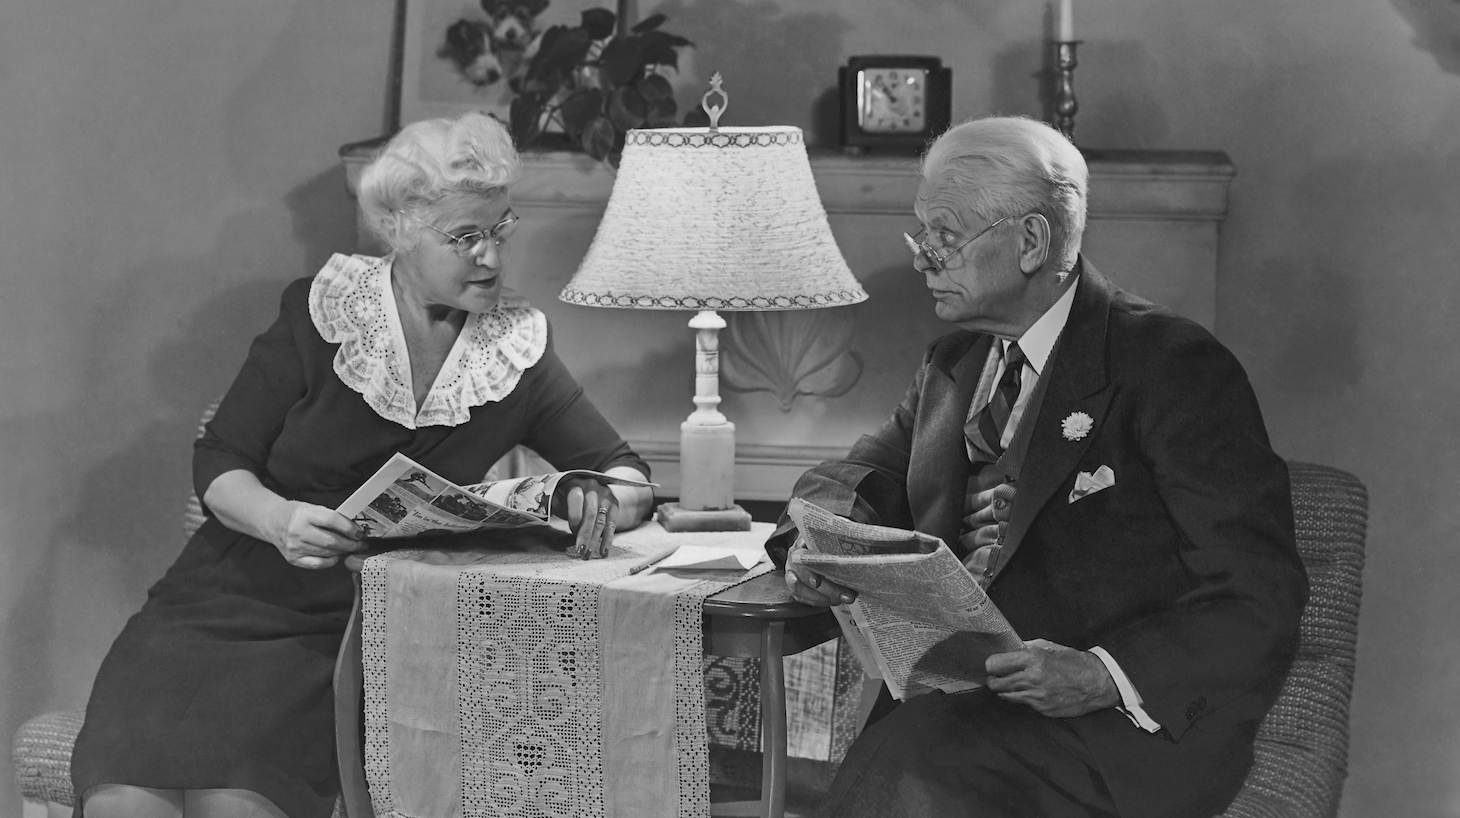 An old man reads a newspaper as his wife looks through a magazine circa 1940's. (Photo by FPG/Getty Images)